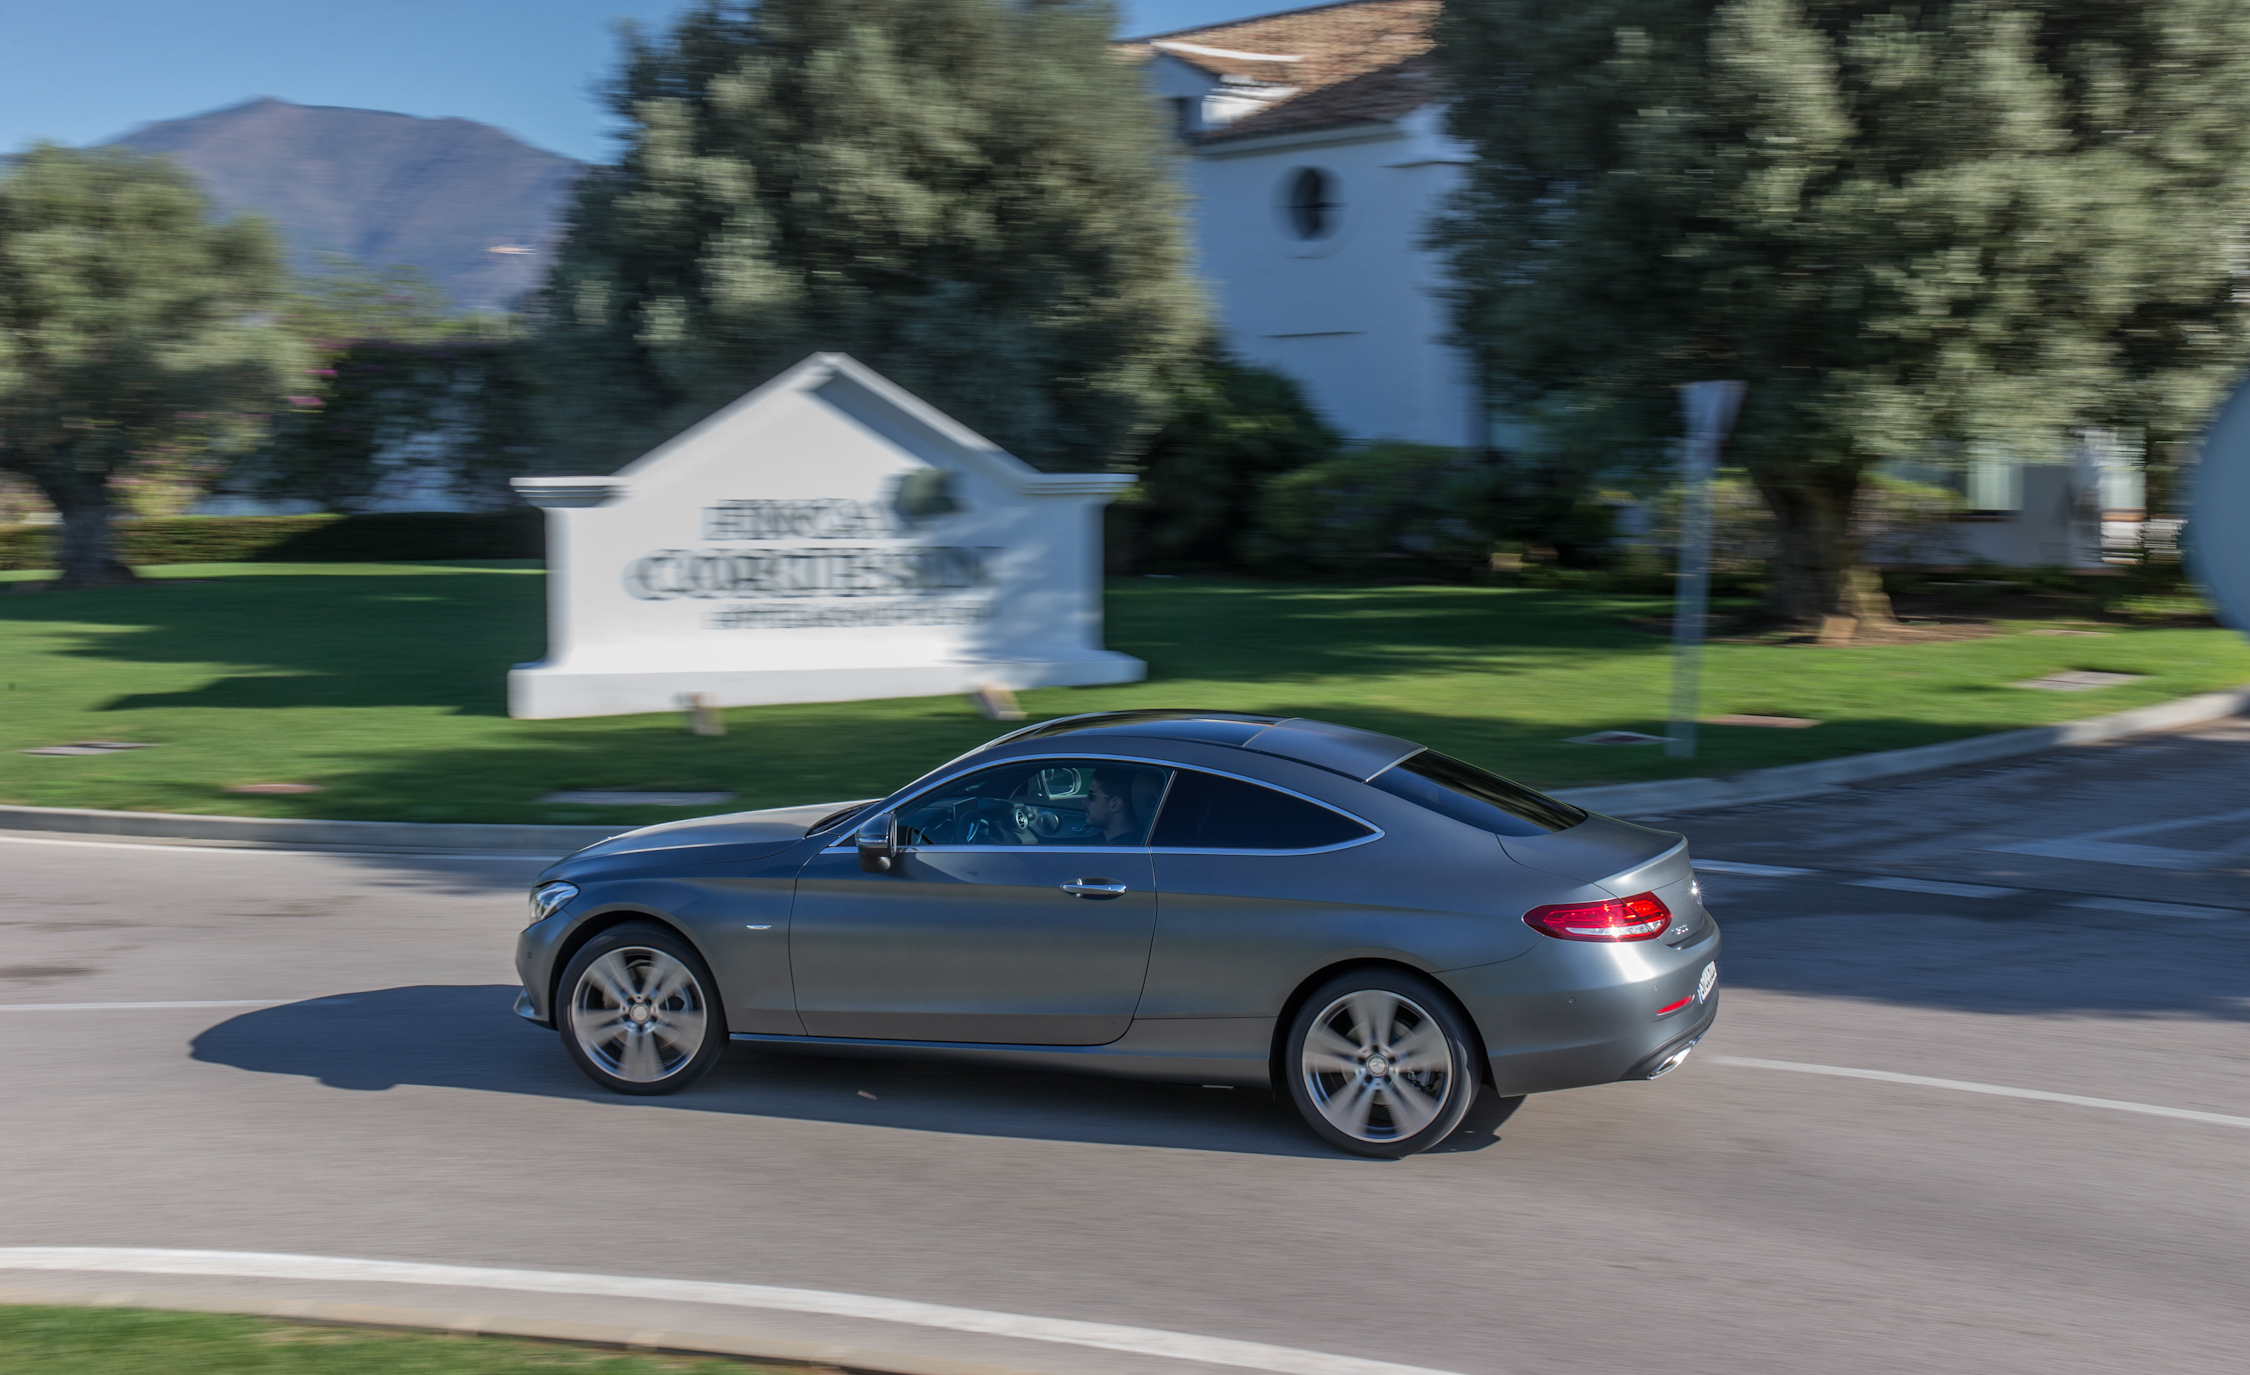 2017 mercedes benz c class coupe review 7730 cars for Mercedes benz c300 review 2017